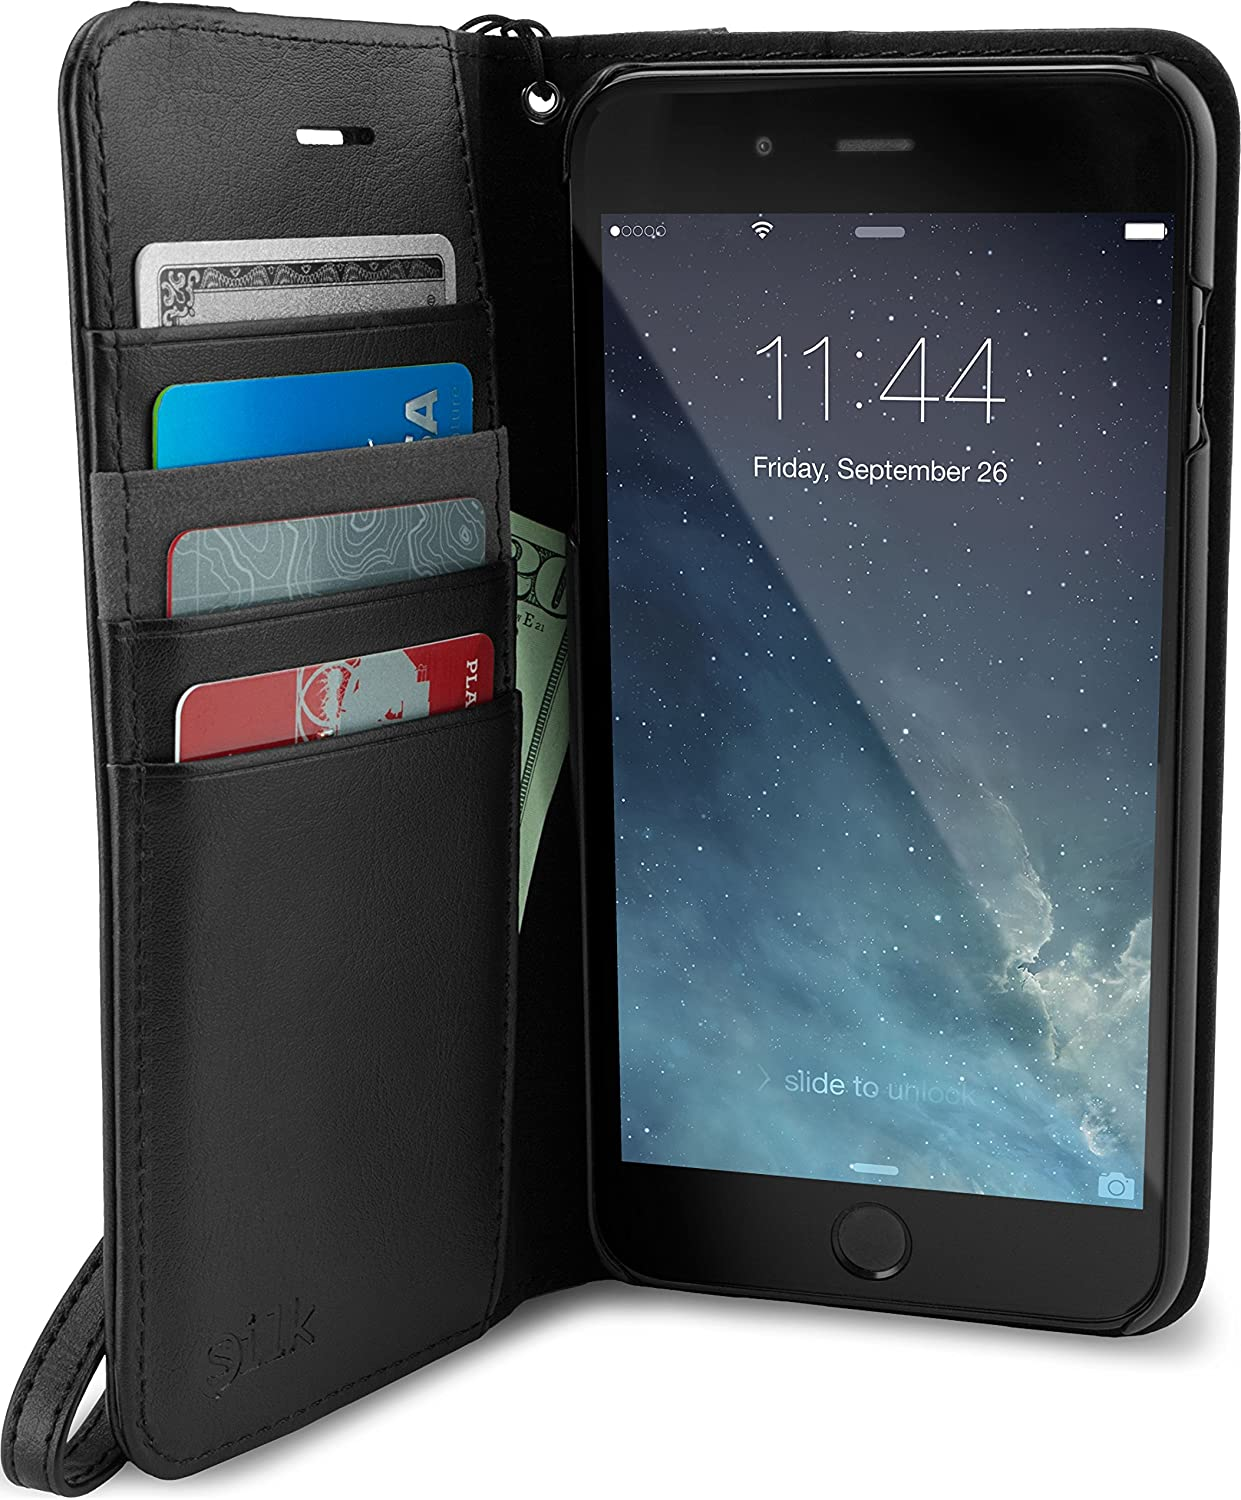 Amazon Com Smartish Silk Iphone 8 Plus 7 Plus Wallet Case Keeper Of The Things Folio Wallet Synthetic Leather Portfolio Flip Credit Card Cover With Kickstand Black Tie Affair